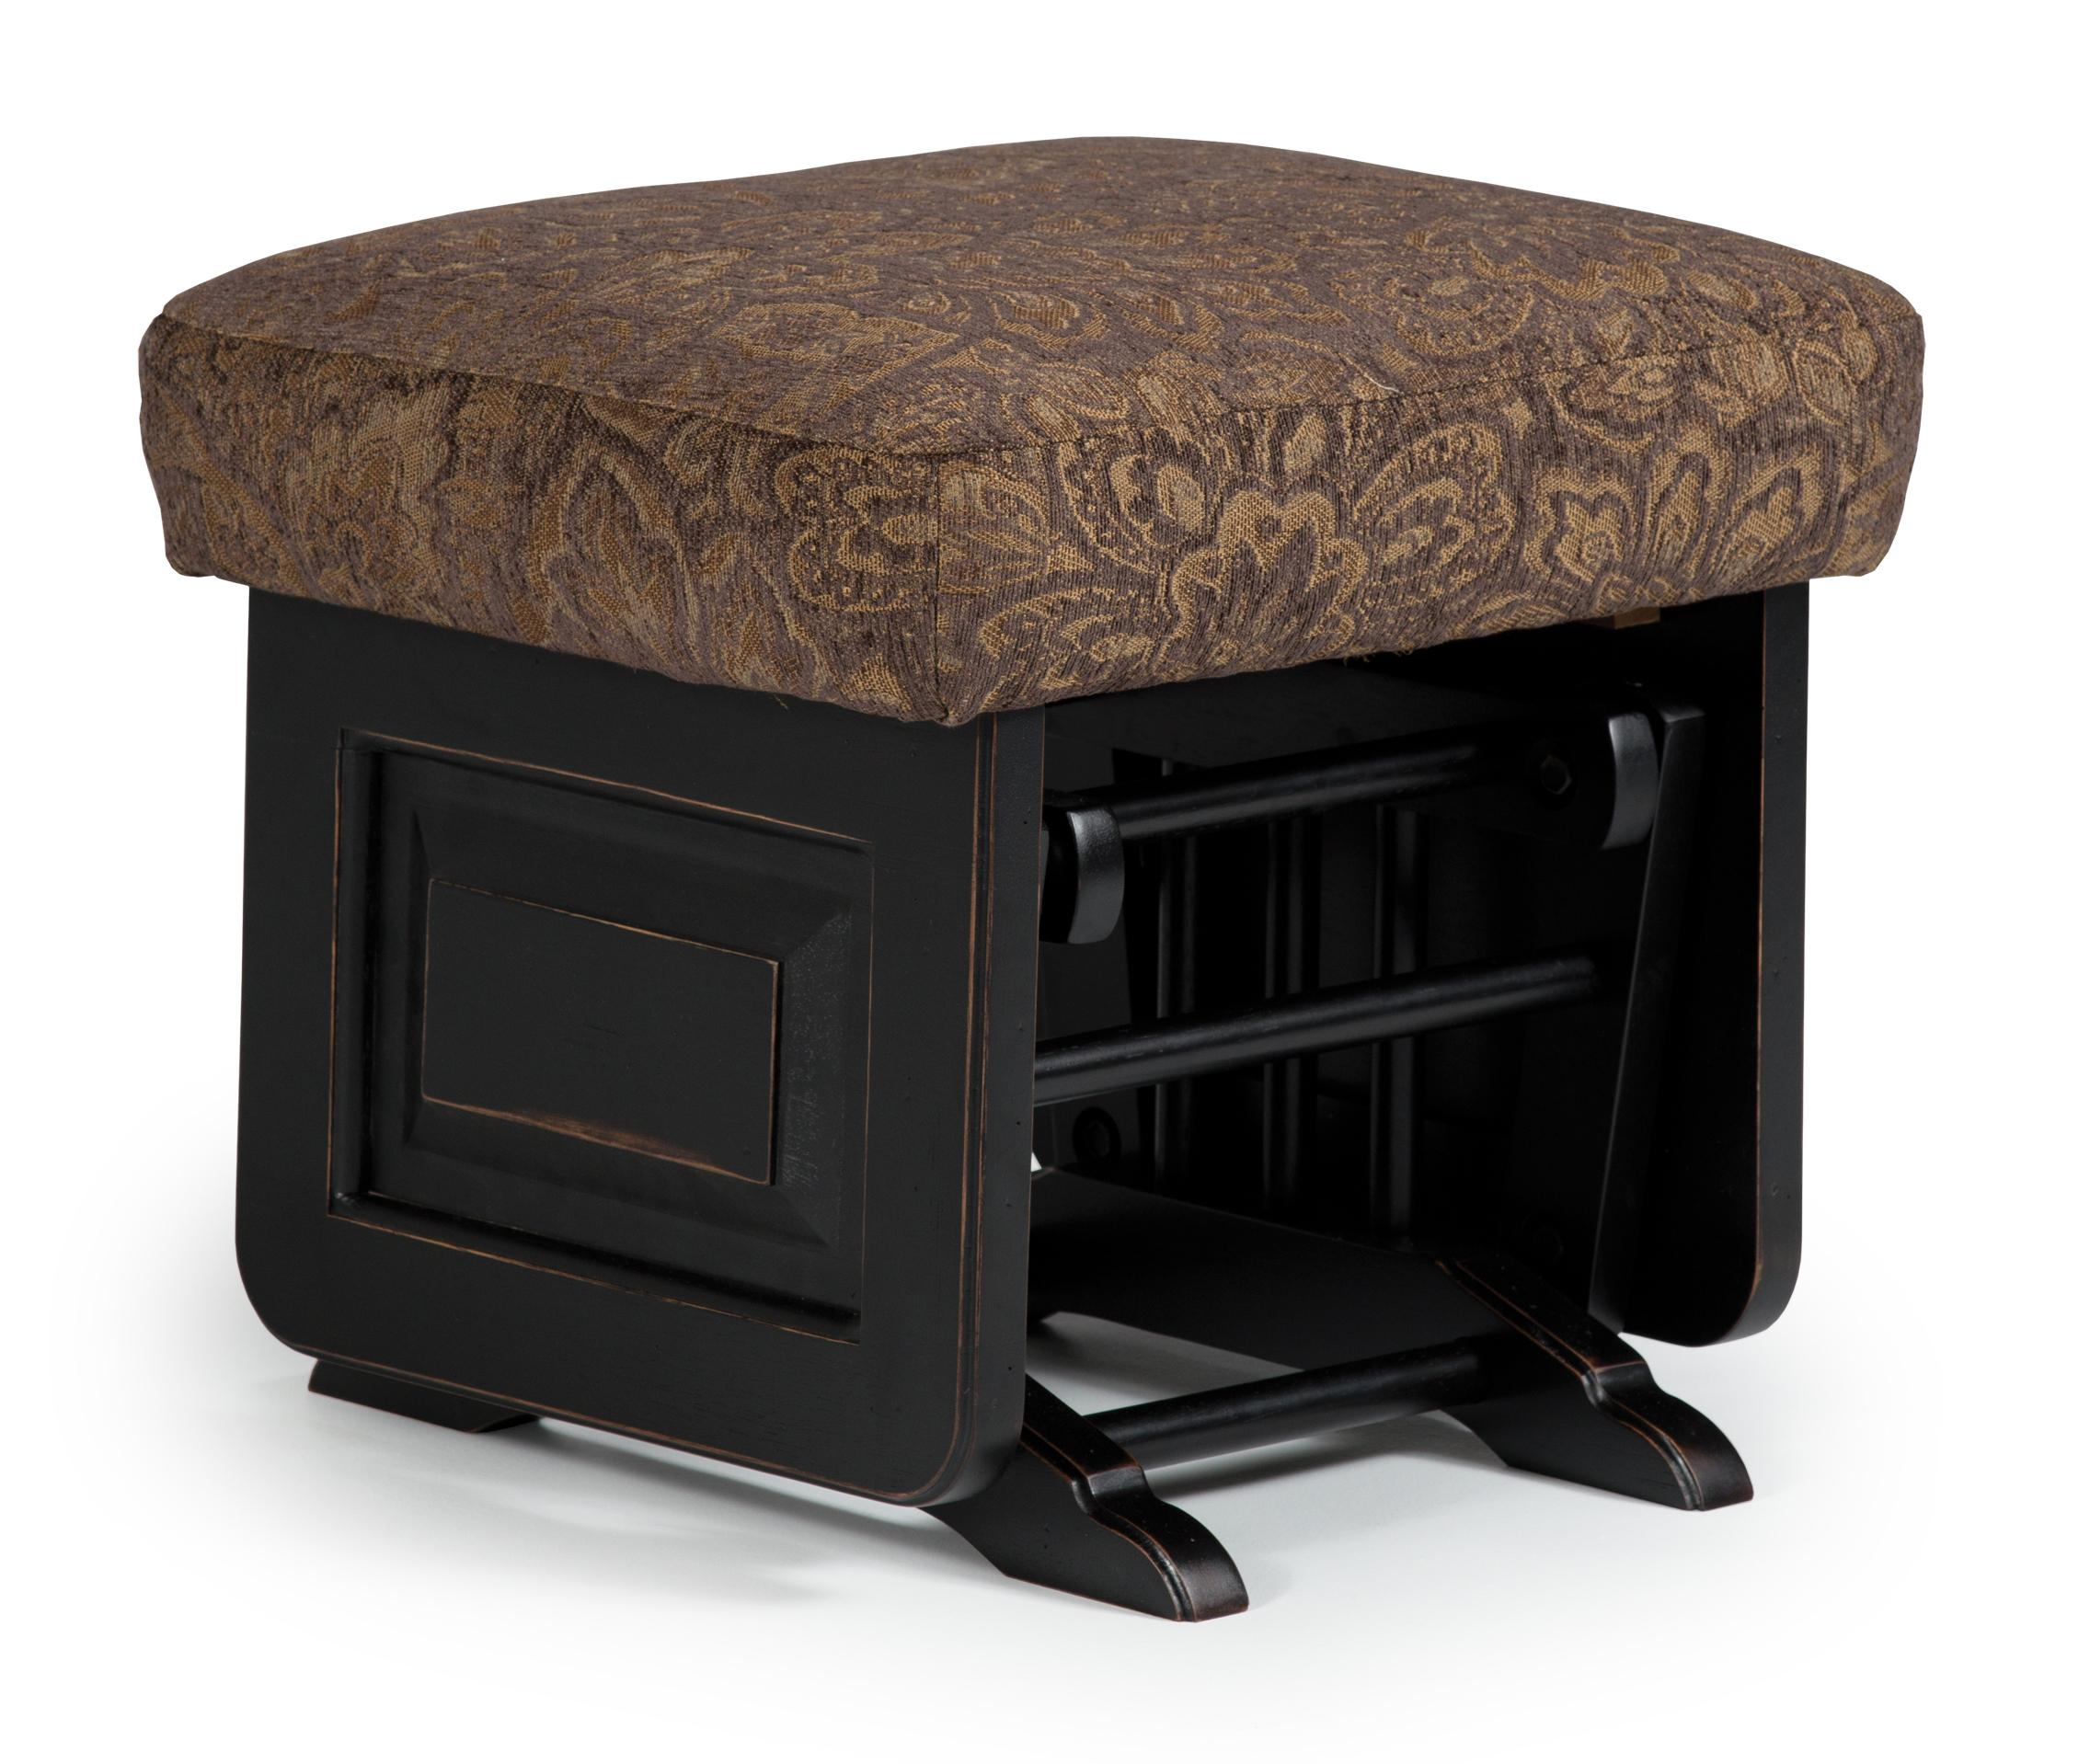 Best home furnishings glider rockers delling ottoman for Best furniture for home